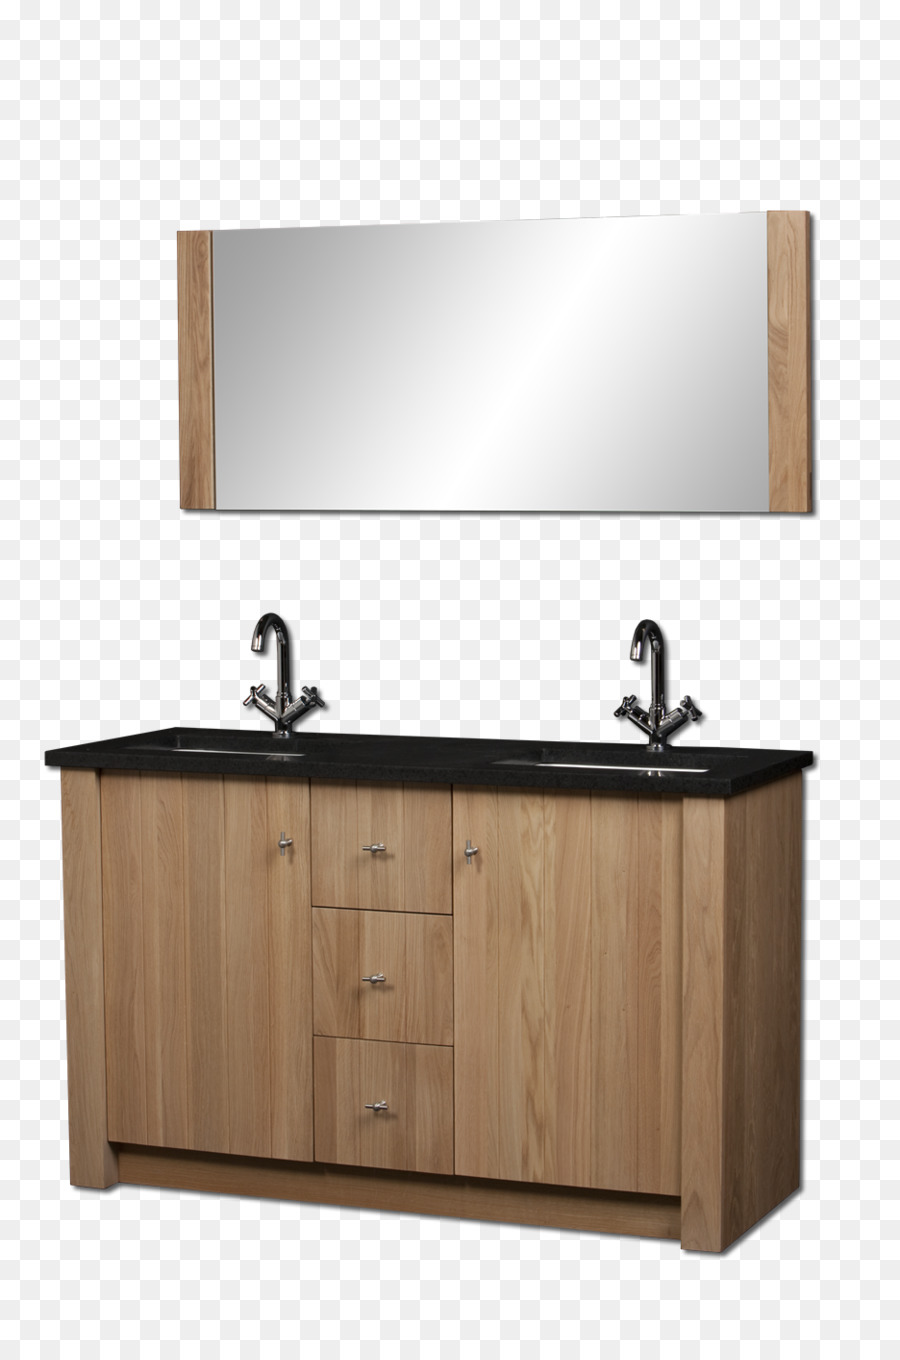 Sideboard Wandhängend Bathroom Cabinet Drawer Sink Furniture Sink Png Download 936